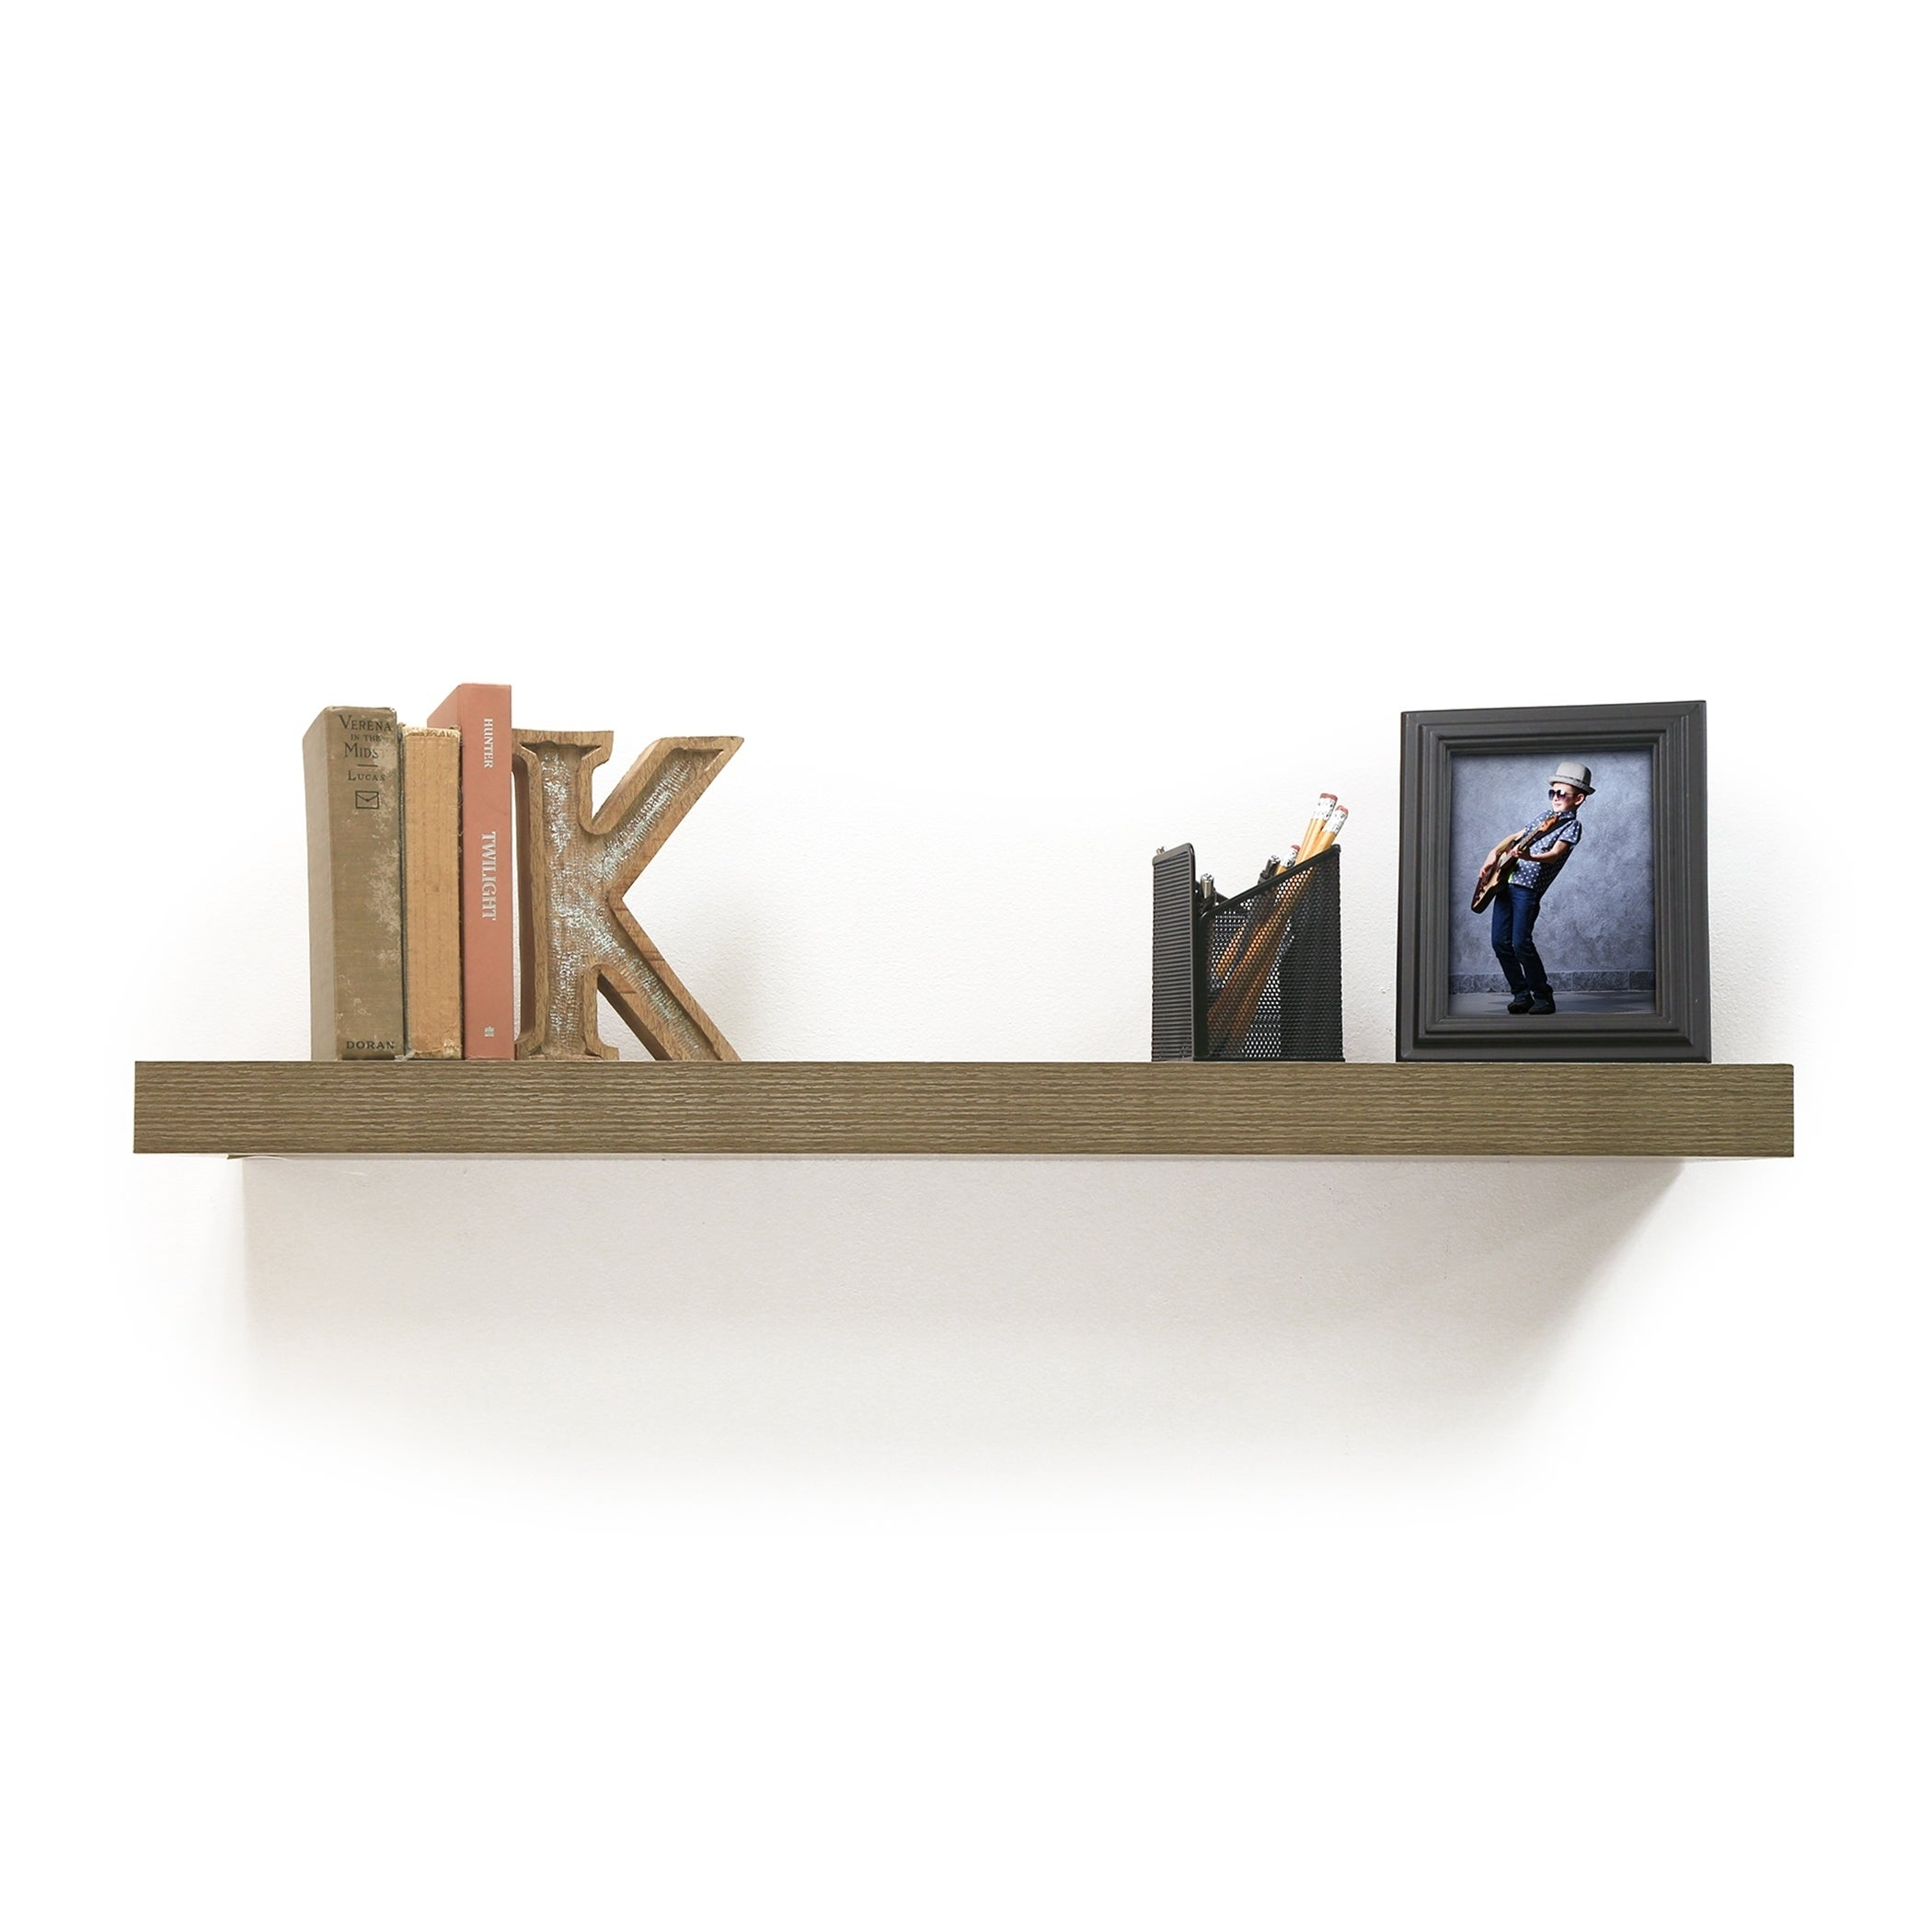 inplace inch grey oak floating shelf free shipping lewis hyman shelves mitre clothes airer vintage style brackets custom closet dimensions mosslanda ture ledge premade systems